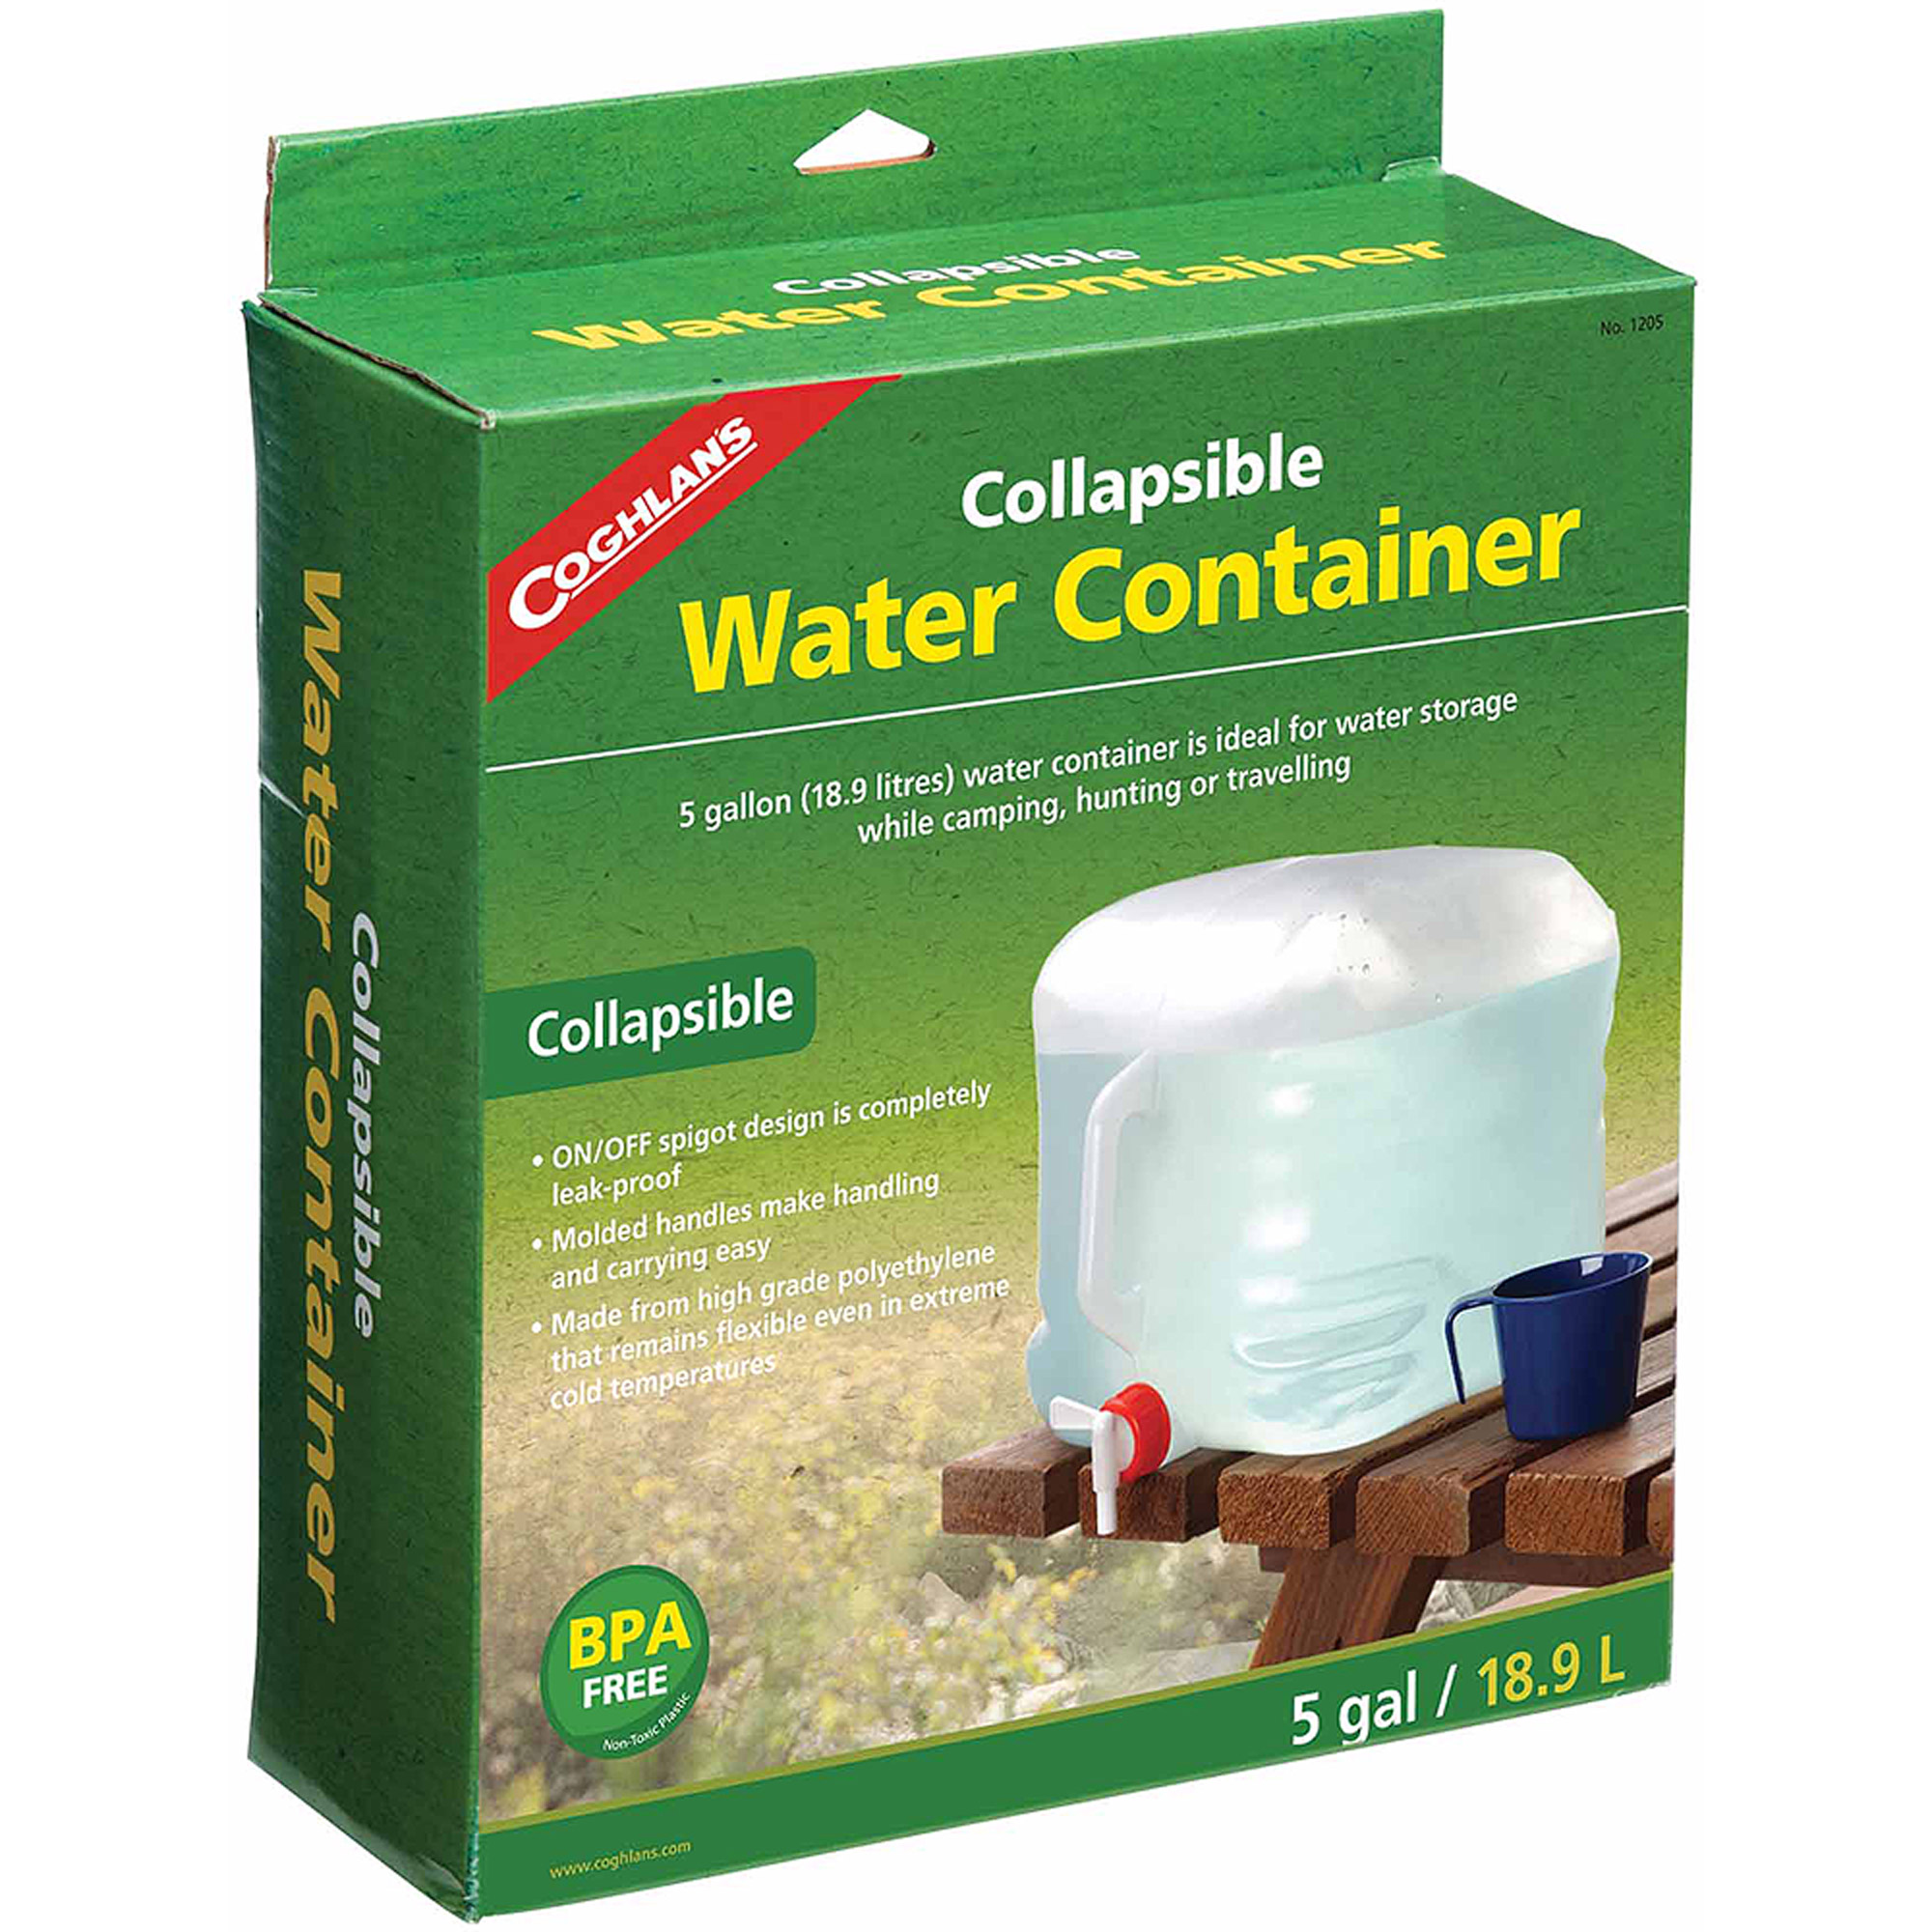 Coghlan's 1205 Collapsible Water Container, 5 Gal